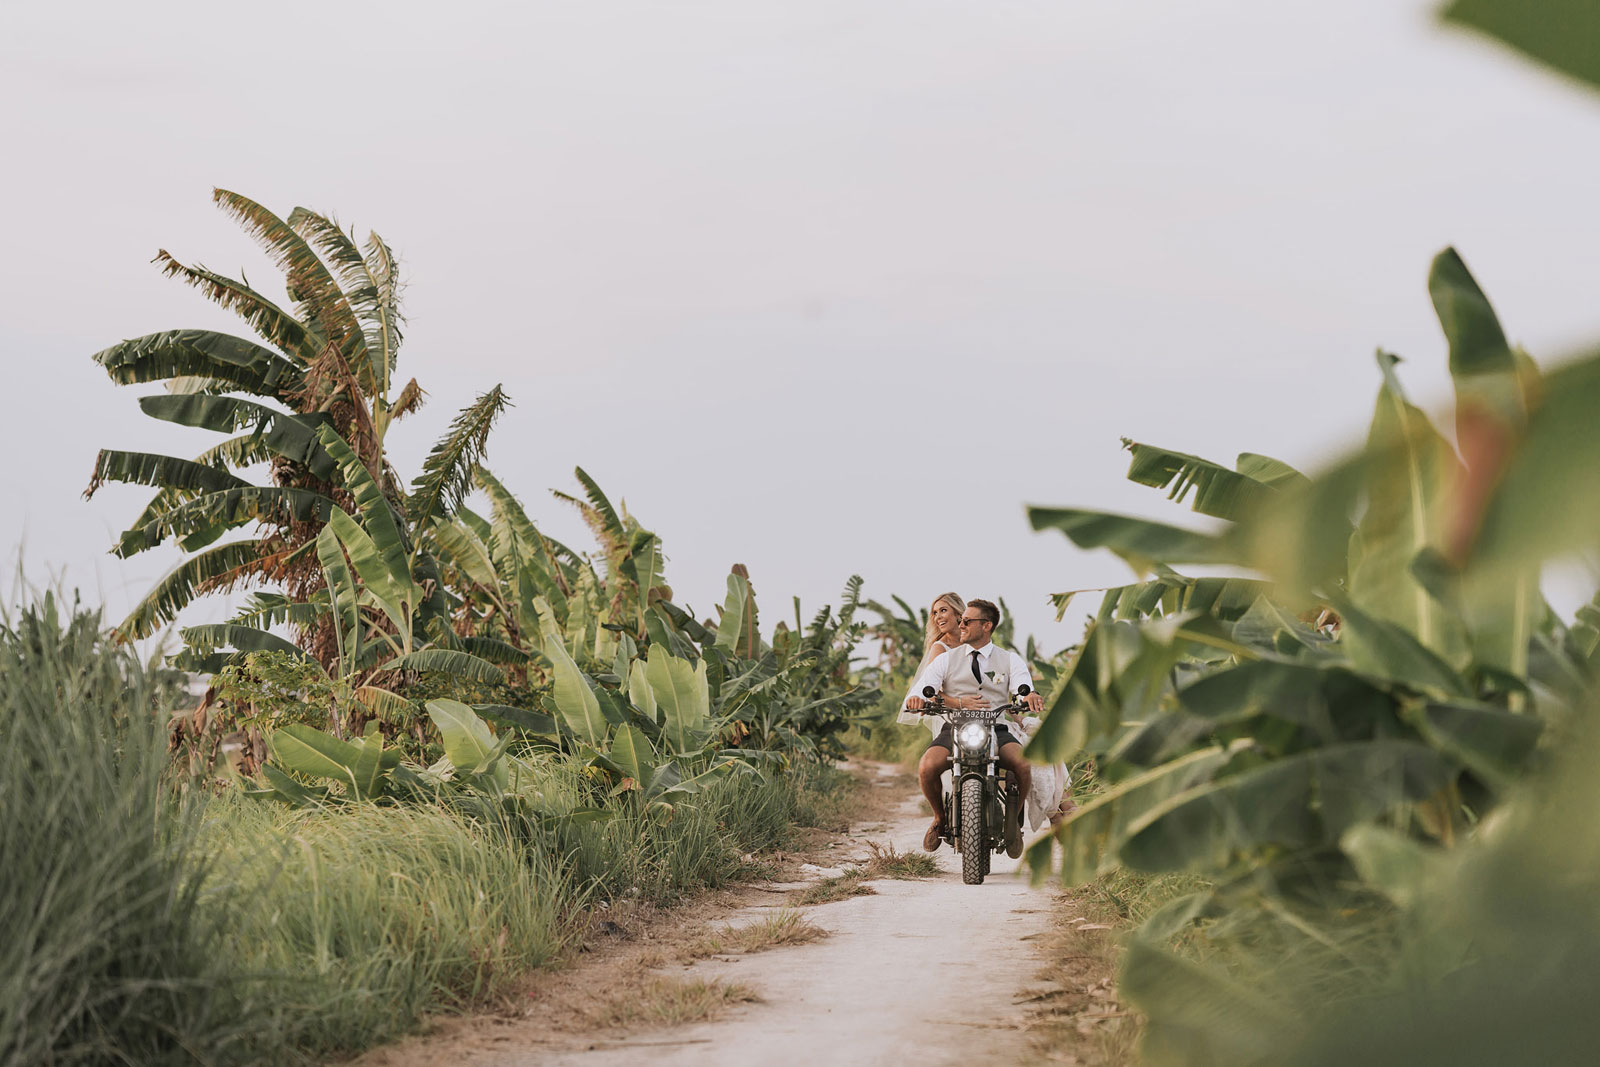 newfound-t-k-canggu-bali-ubud-wedding-photographer-701